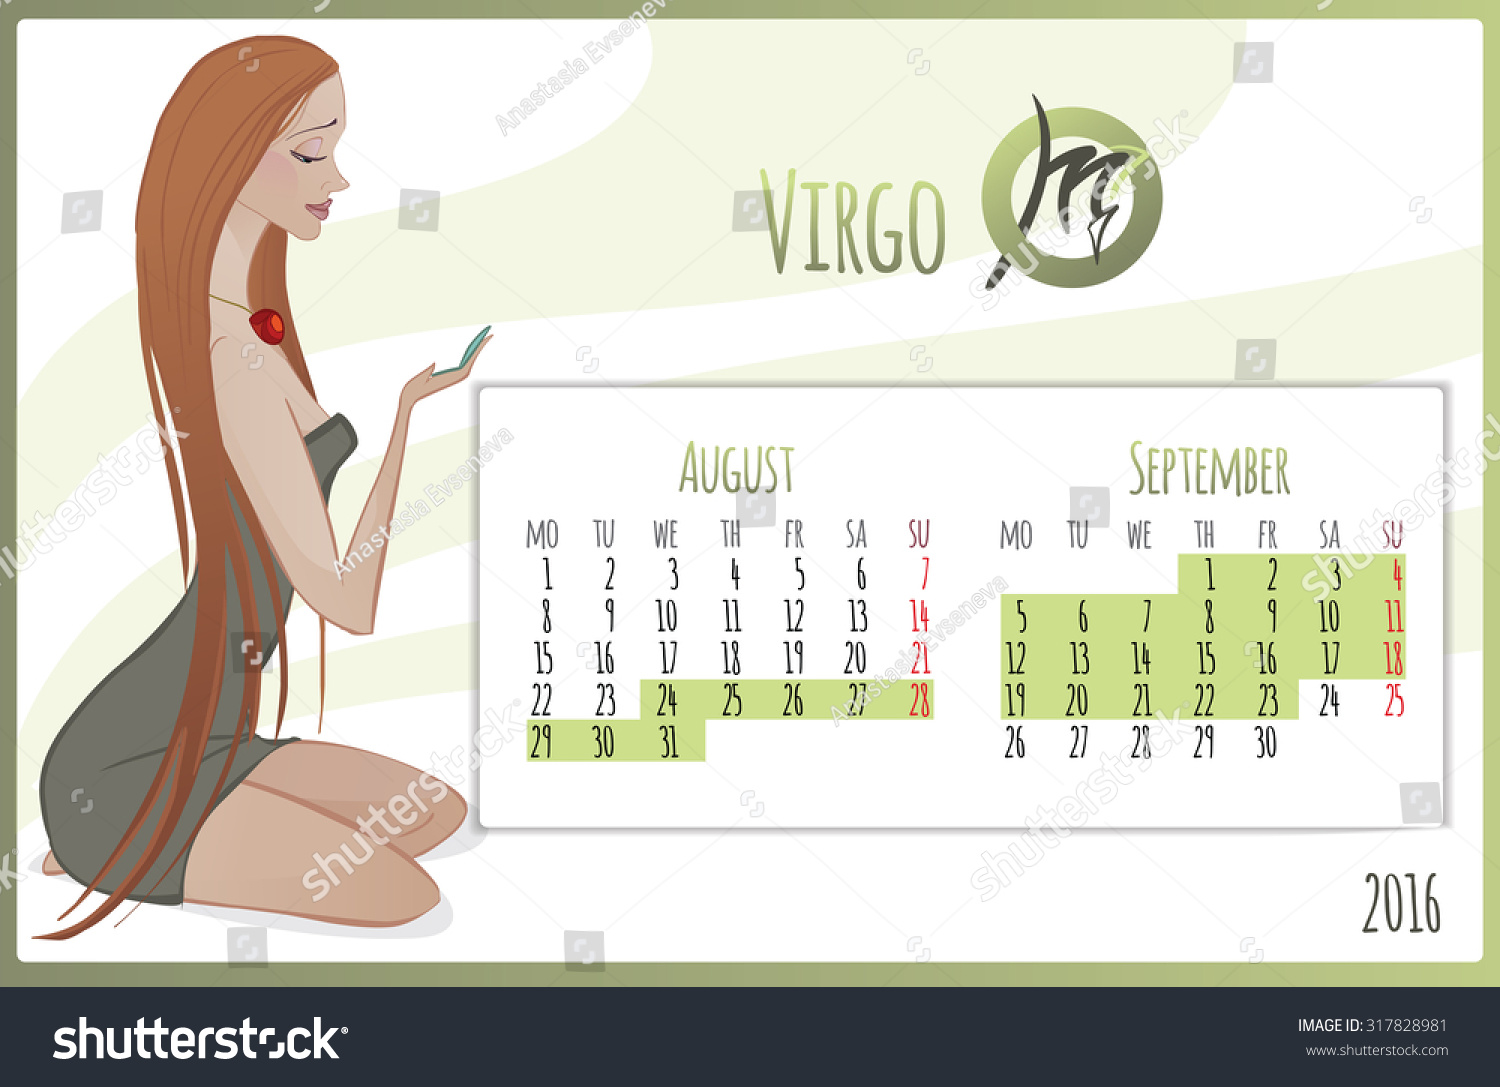 Virgo Calendar May : Cancer horoscope find your fate autos post